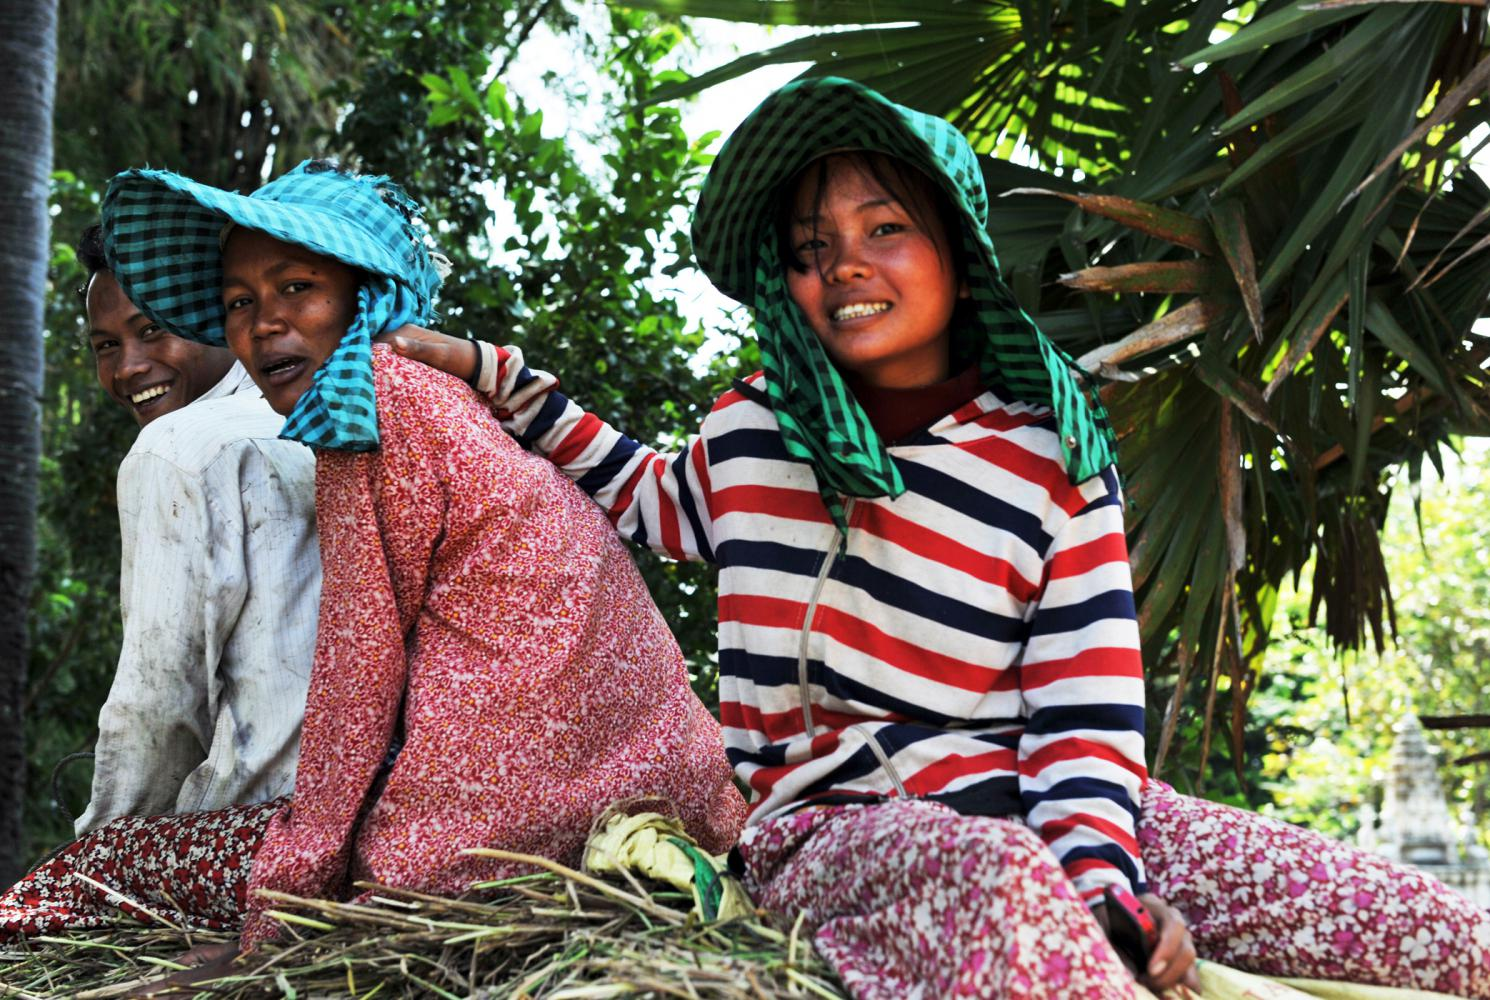 Cambodge : Nos voyages solidaires